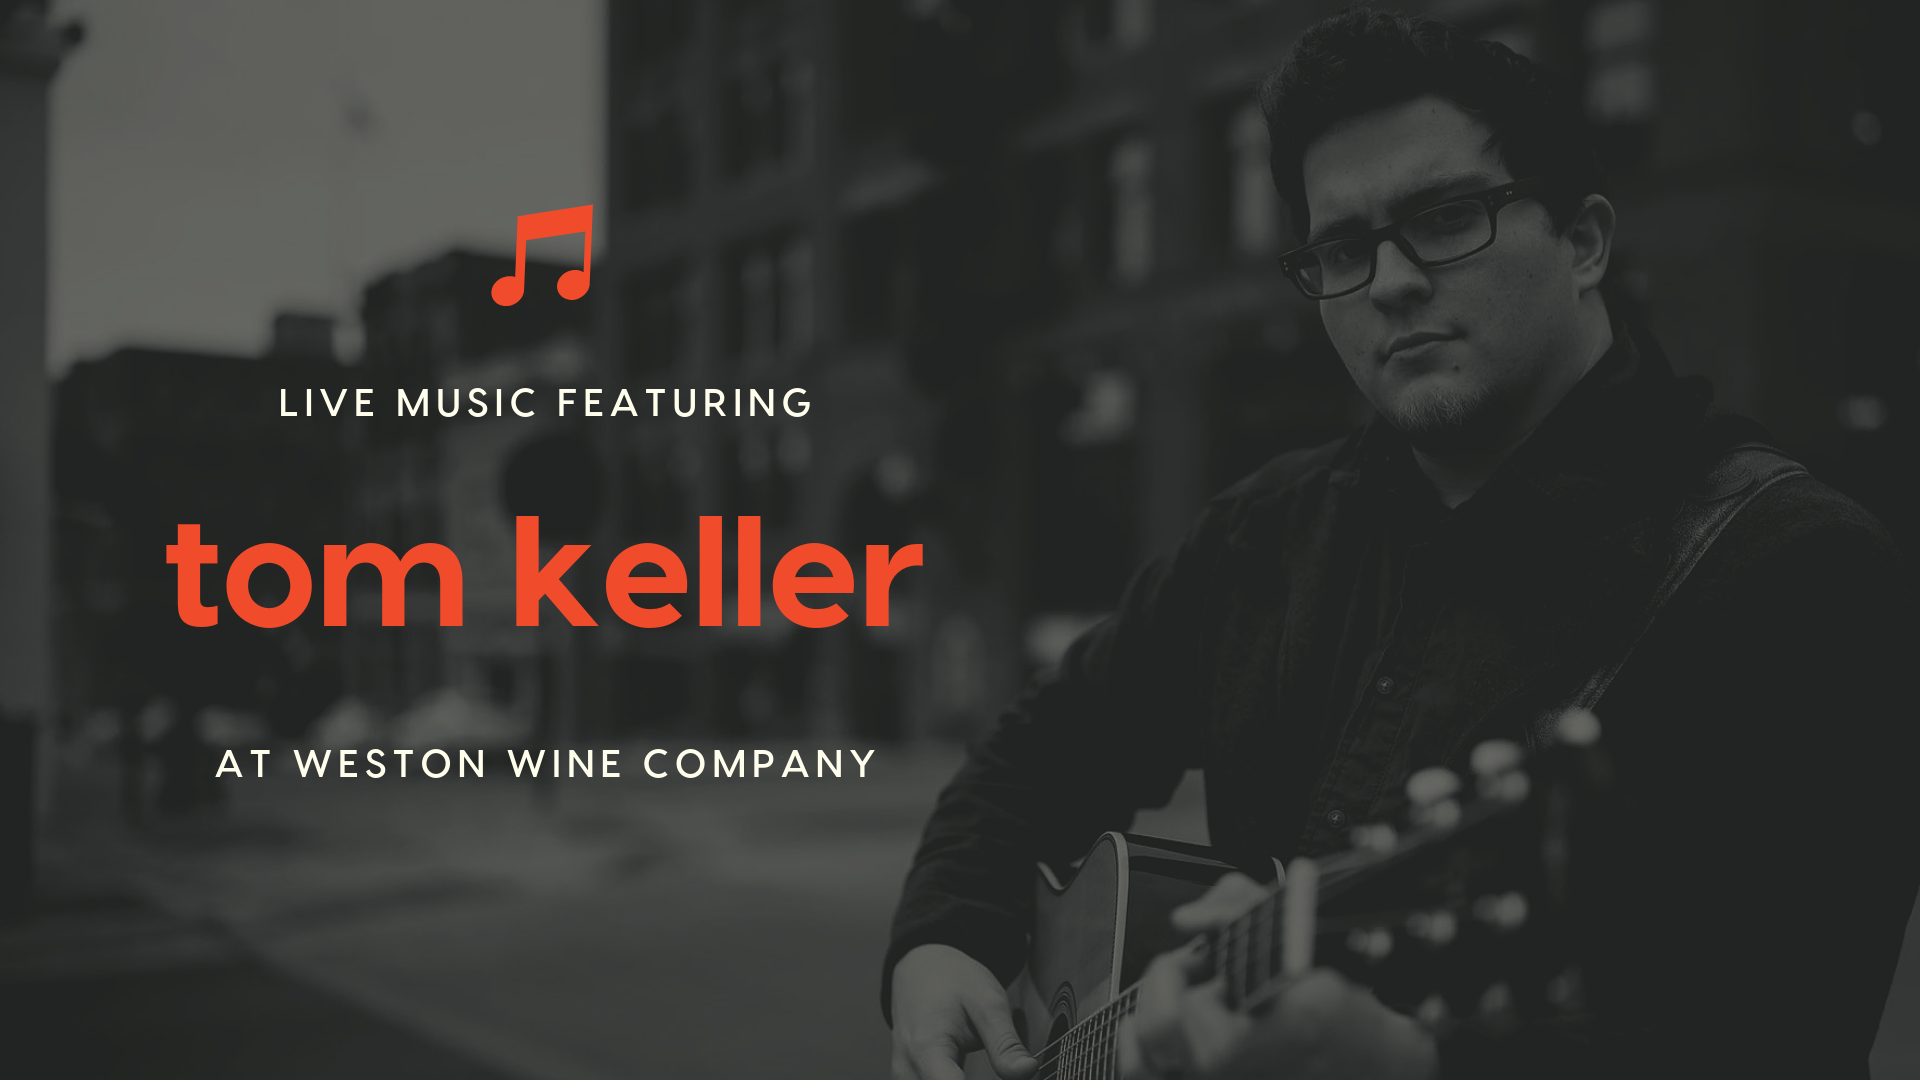 tom keller live music.png